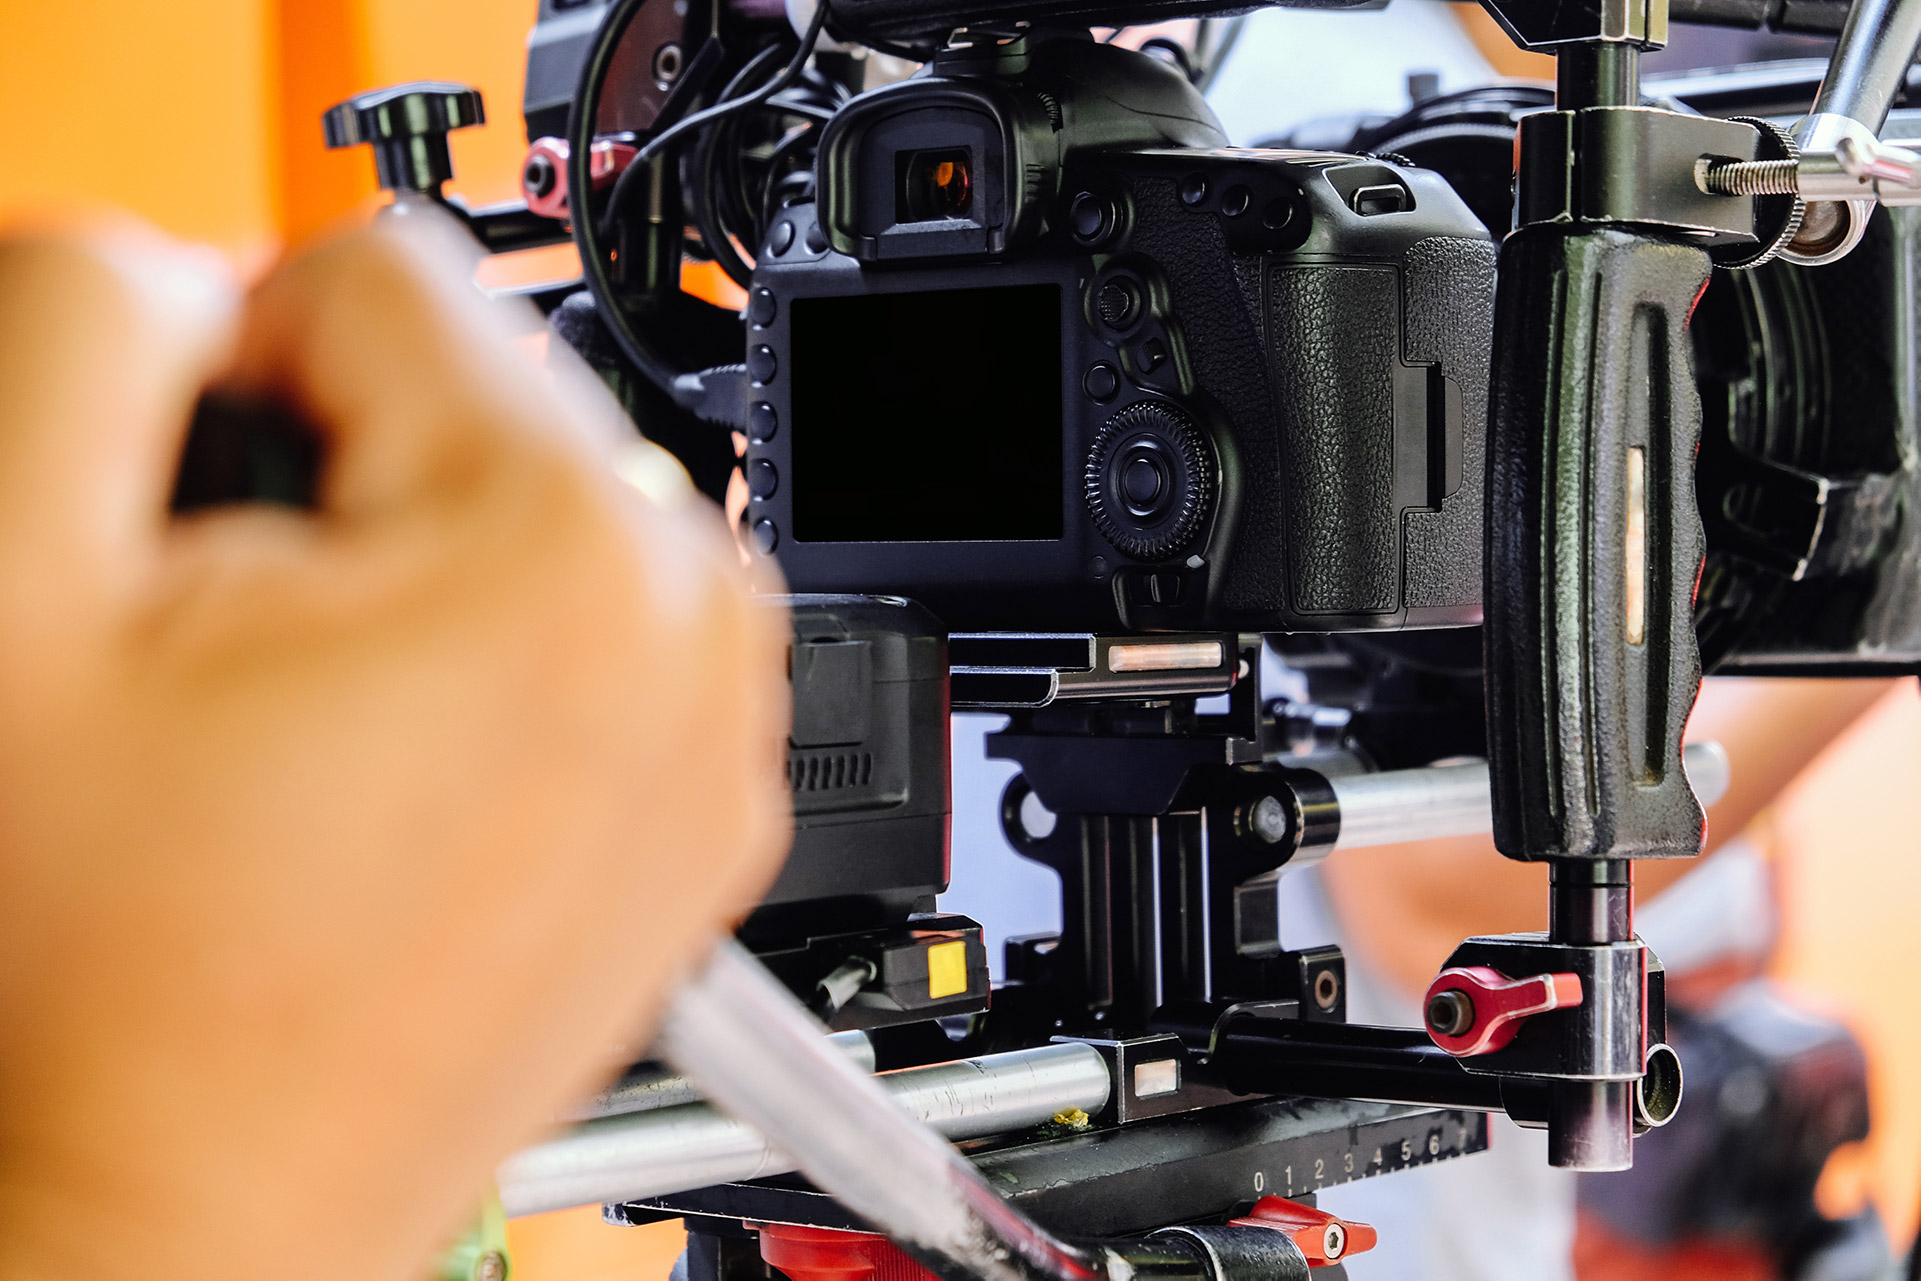 Picture of a camera ready to shoot.